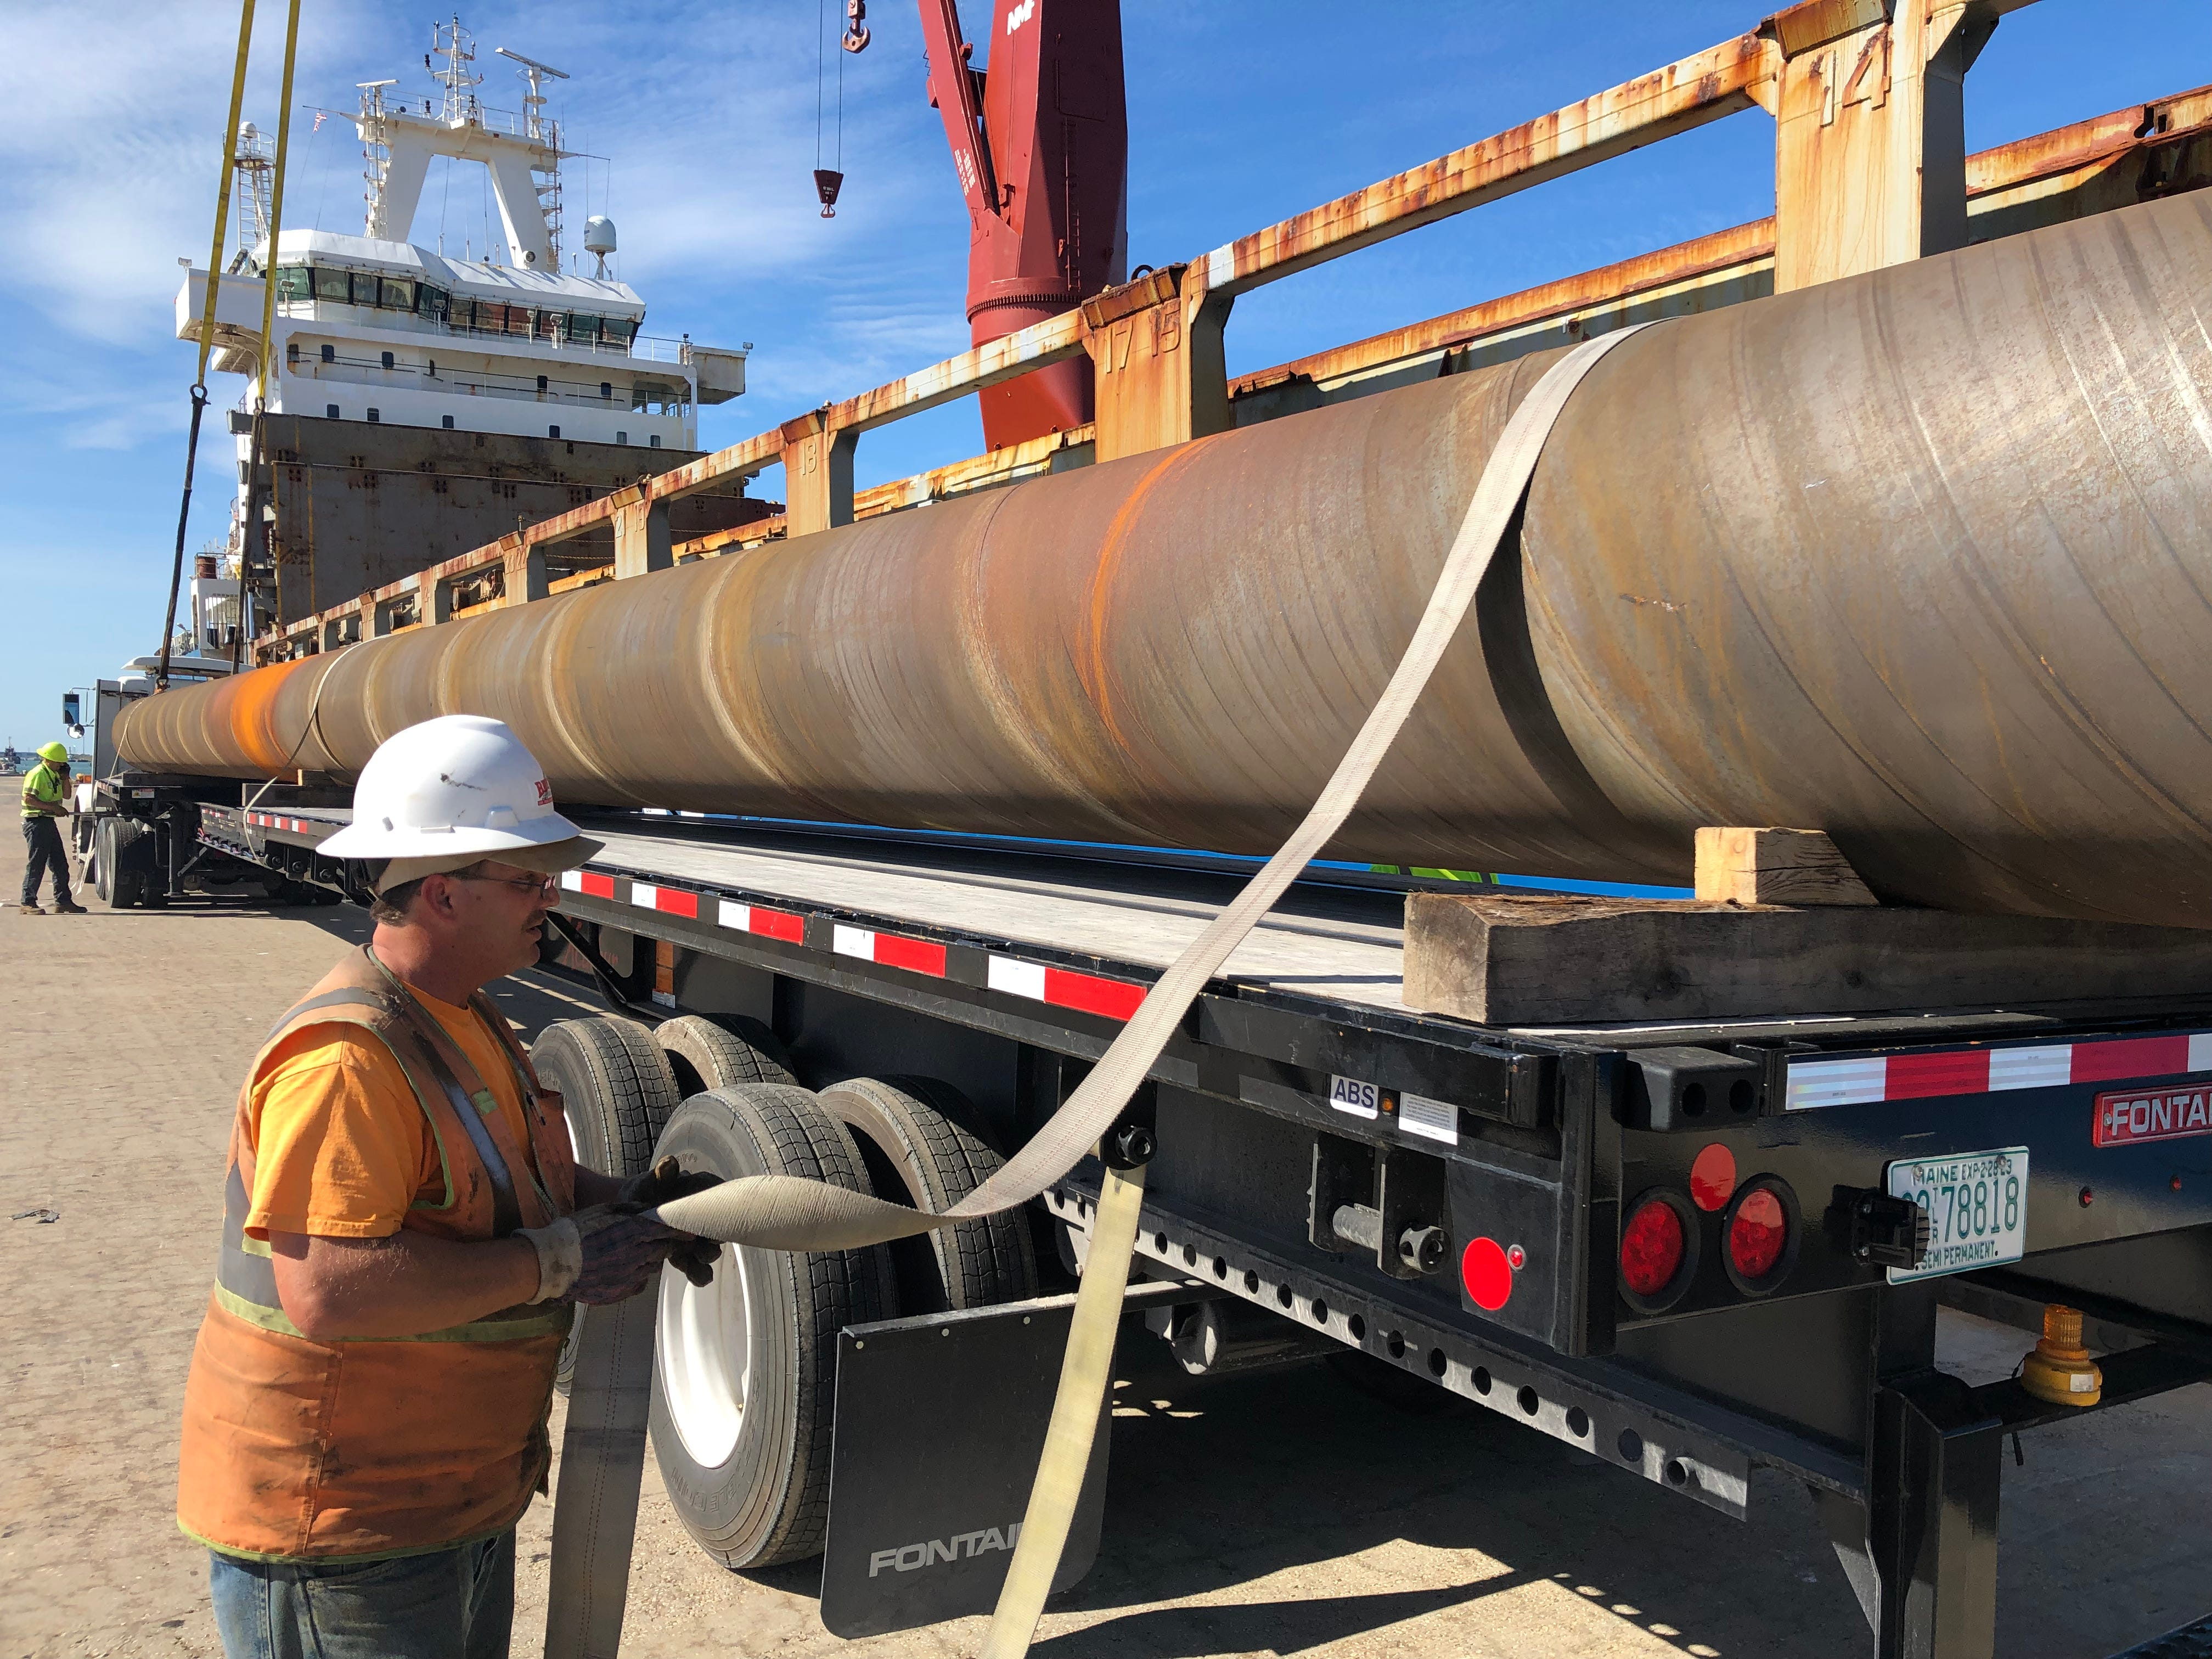 Waterside construction at Port Canaveral's new Cruise Terminal 3 is underway Dec. 3, 2018, and a new 1,309-foot-long berth is about to take shape with the arrival of the first steel for the bulkhead wall.